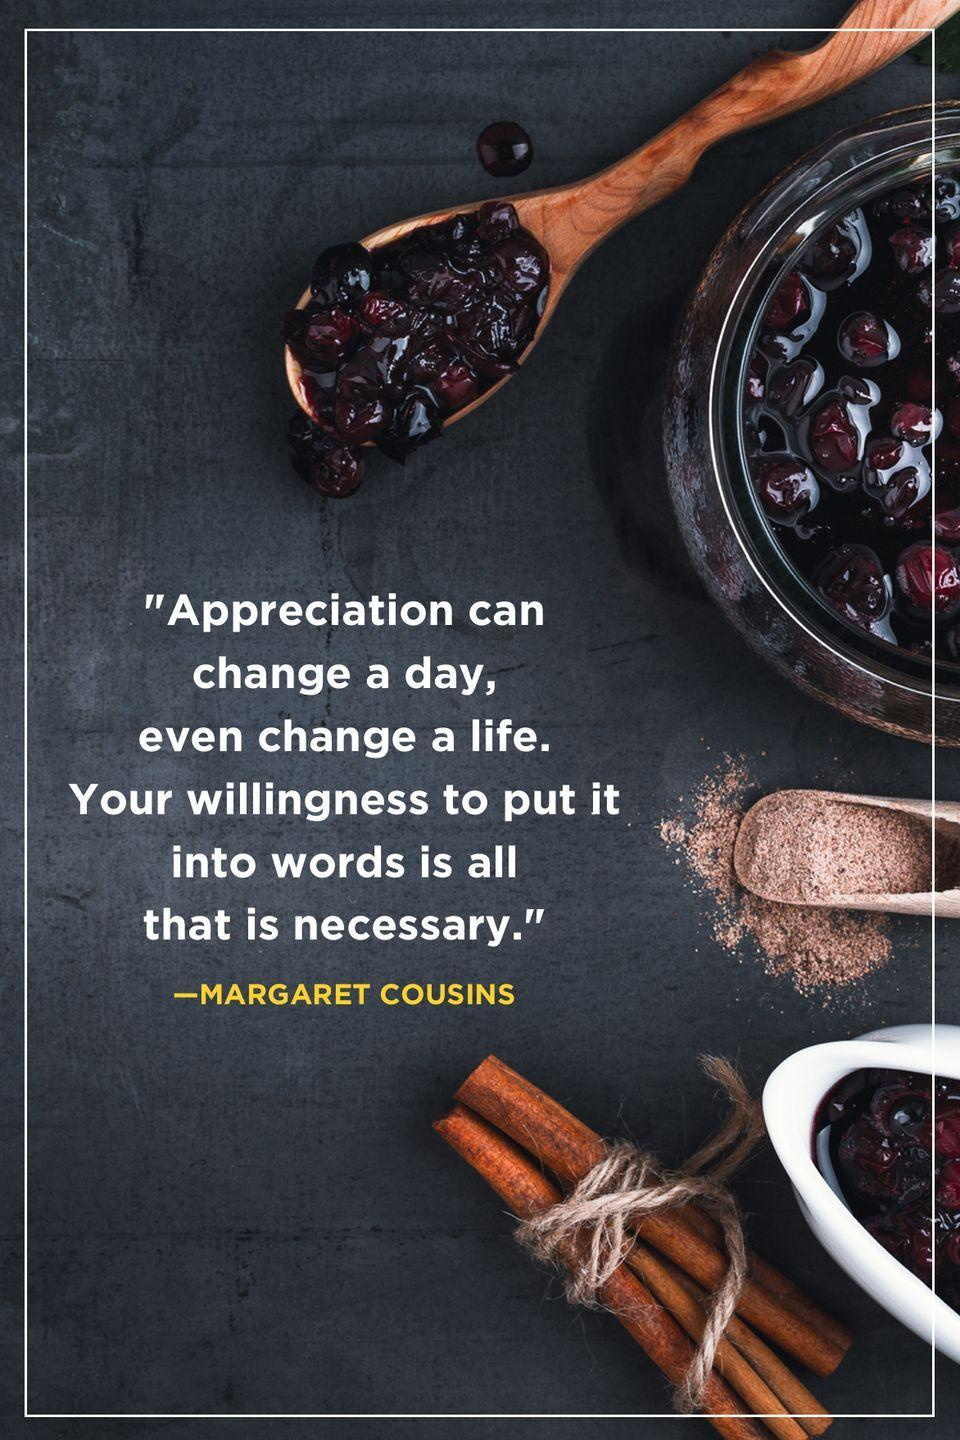 """<p>""""Appreciation can change a day, even change a life. Your willingness to put it into words is all that is necessary.""""</p>"""